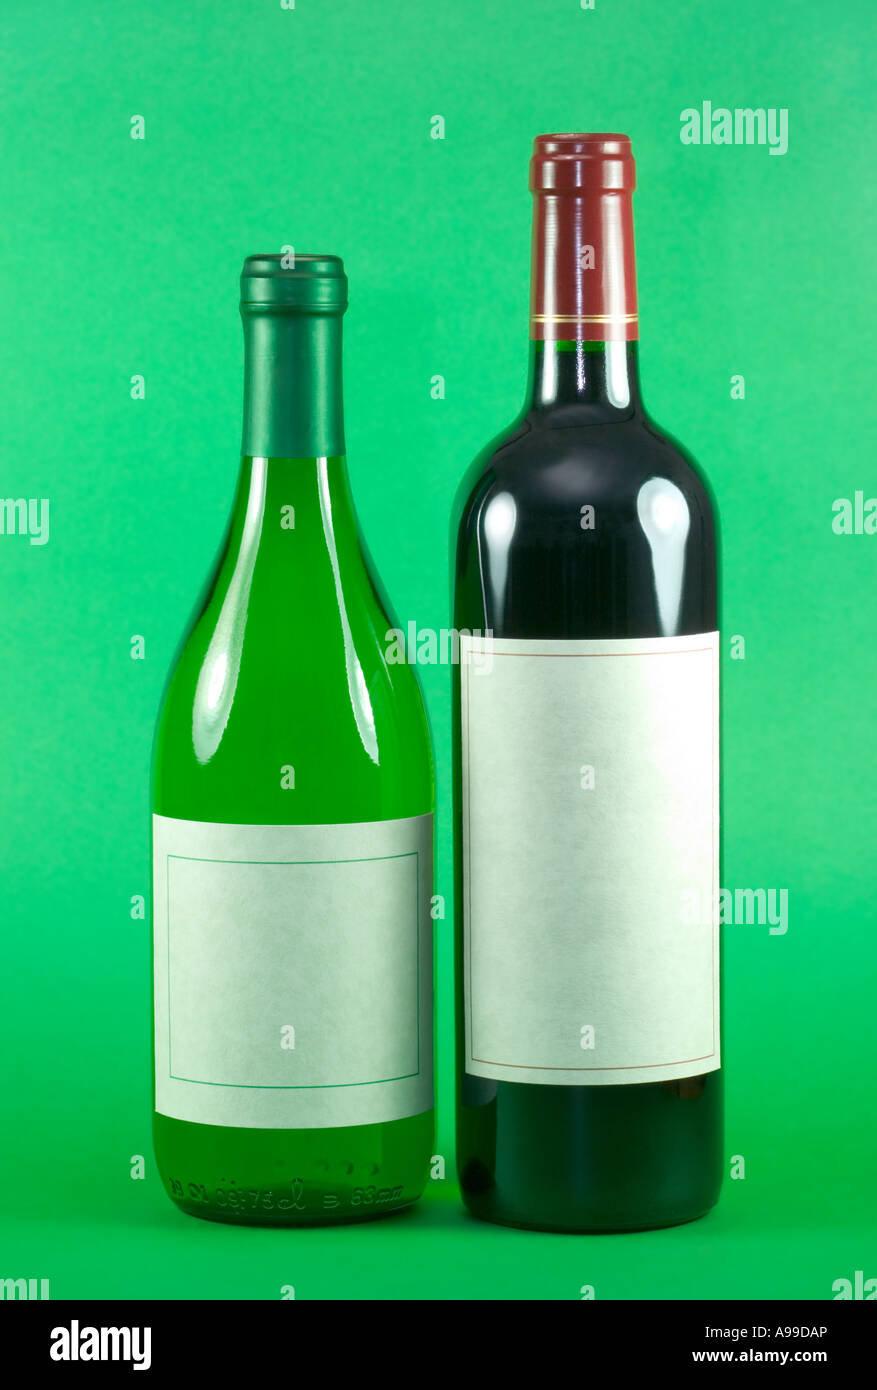 Bottle s of Red and White wine with blank labels against a green background - Stock Image